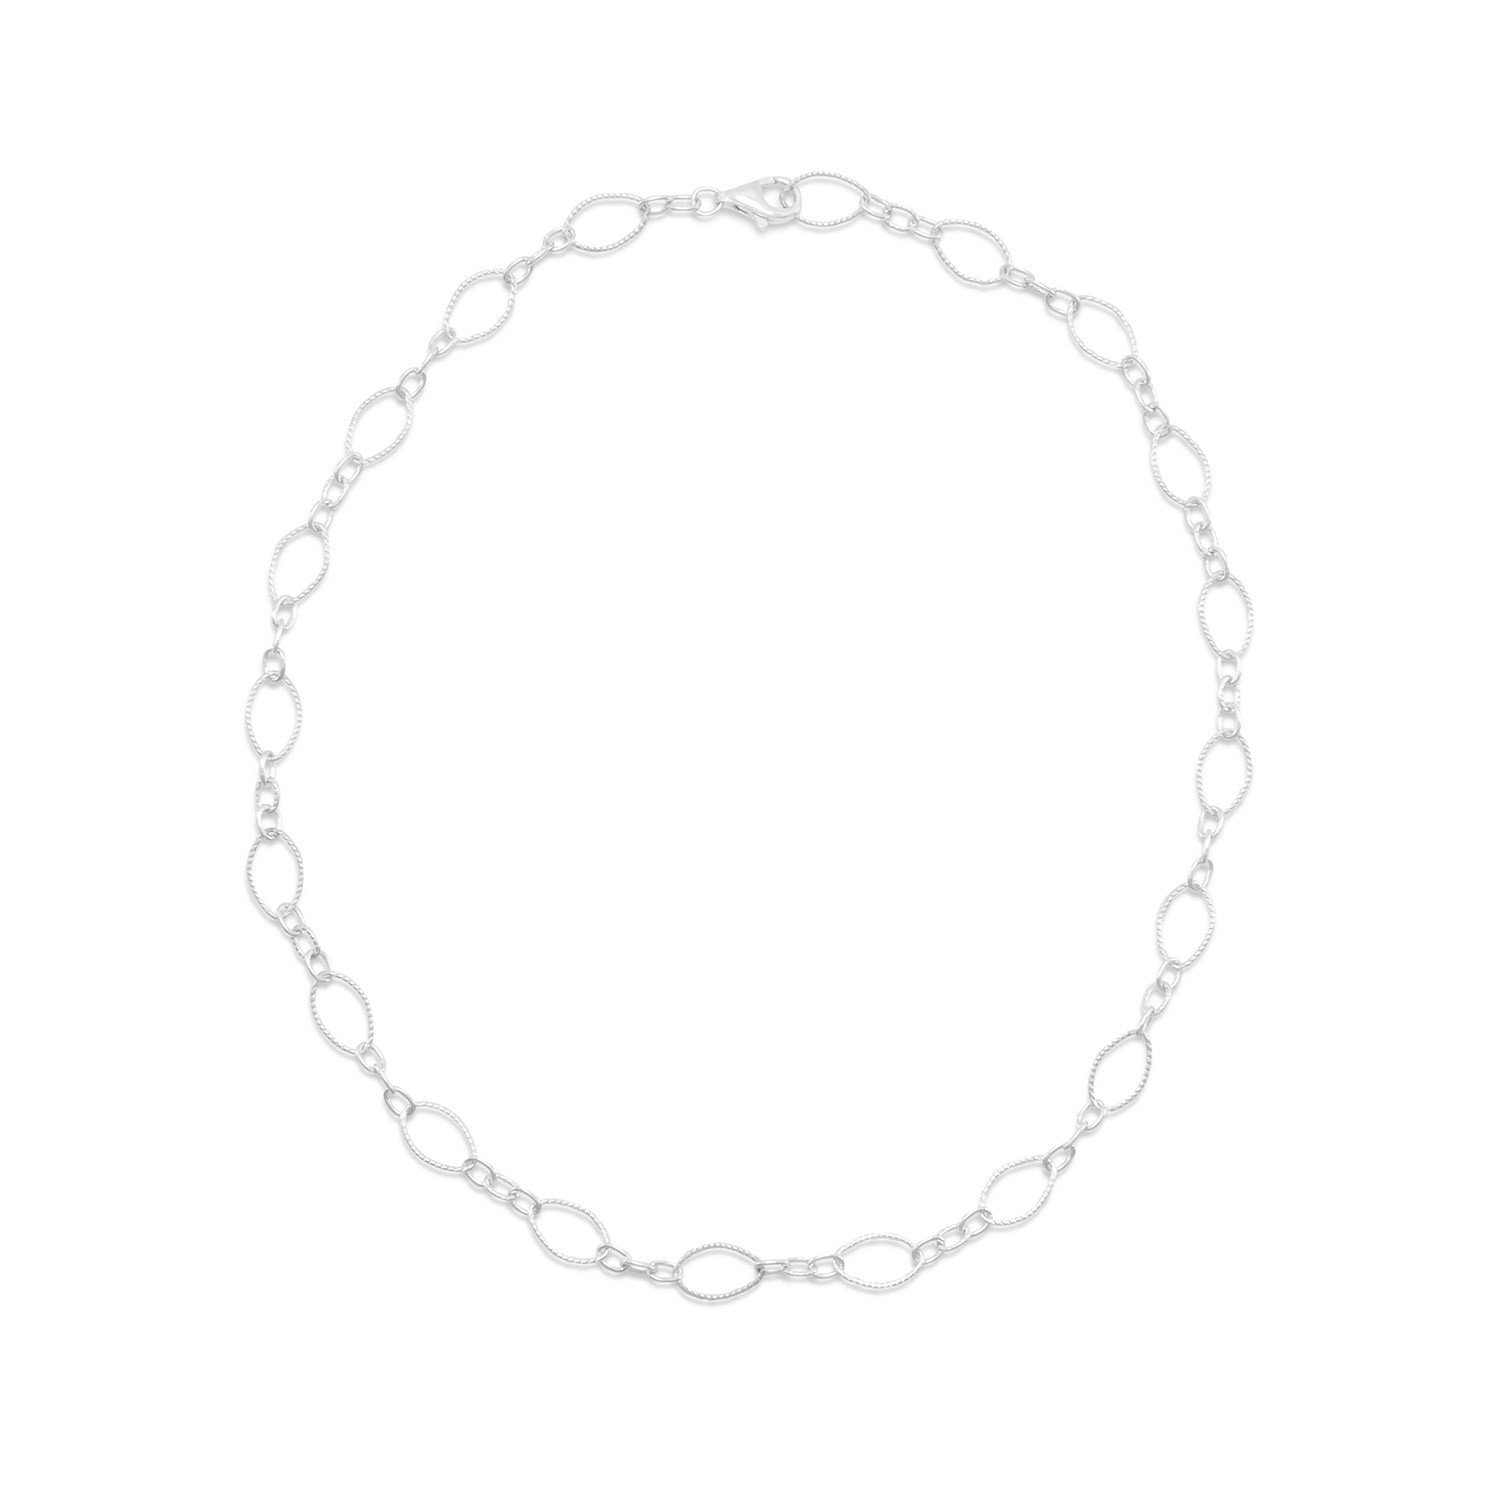 16″ Twist and Polished Link Chain Necklace